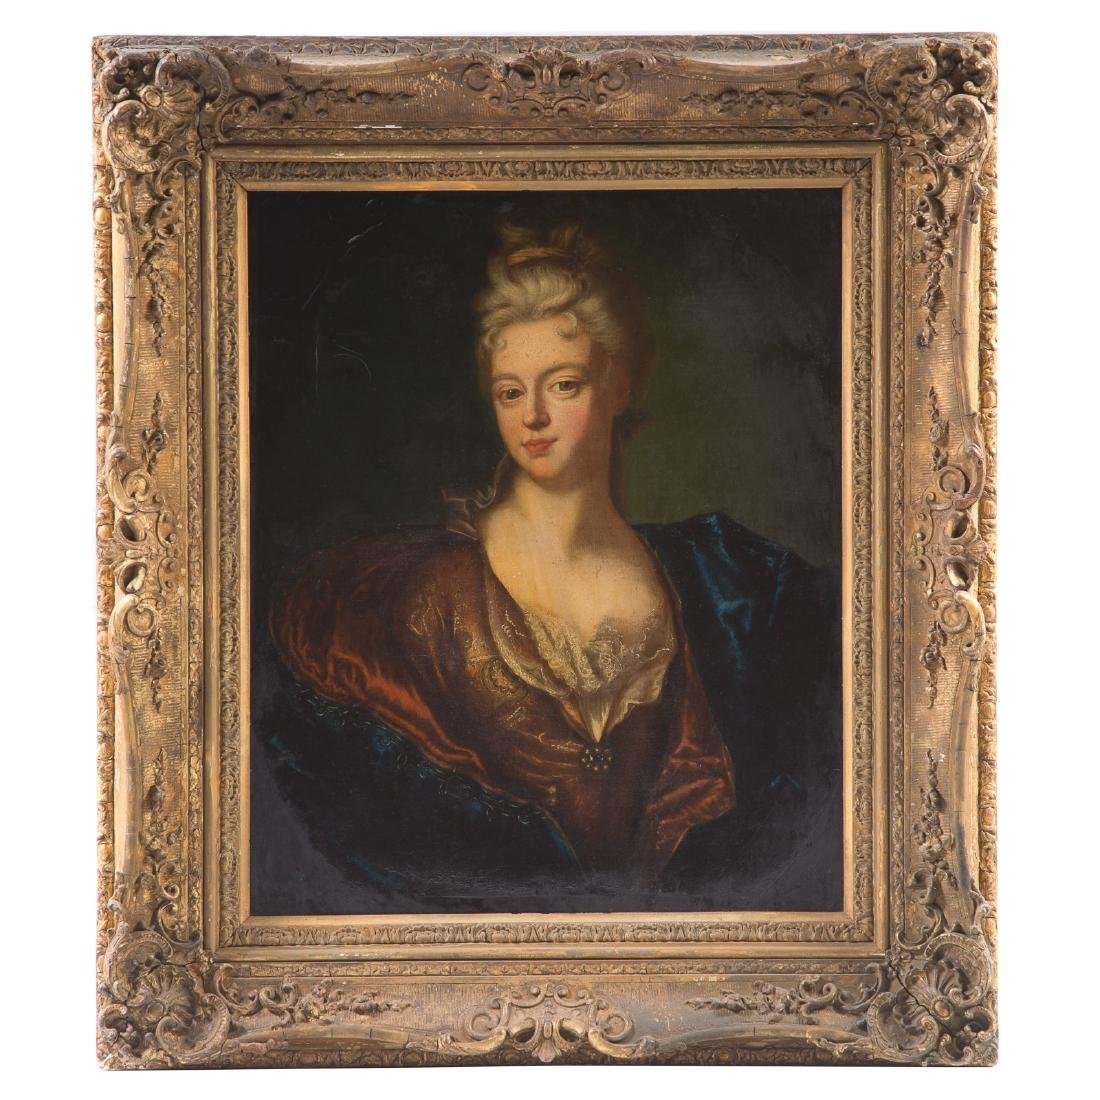 French School, 18th c. Portrait of a Lady, oil